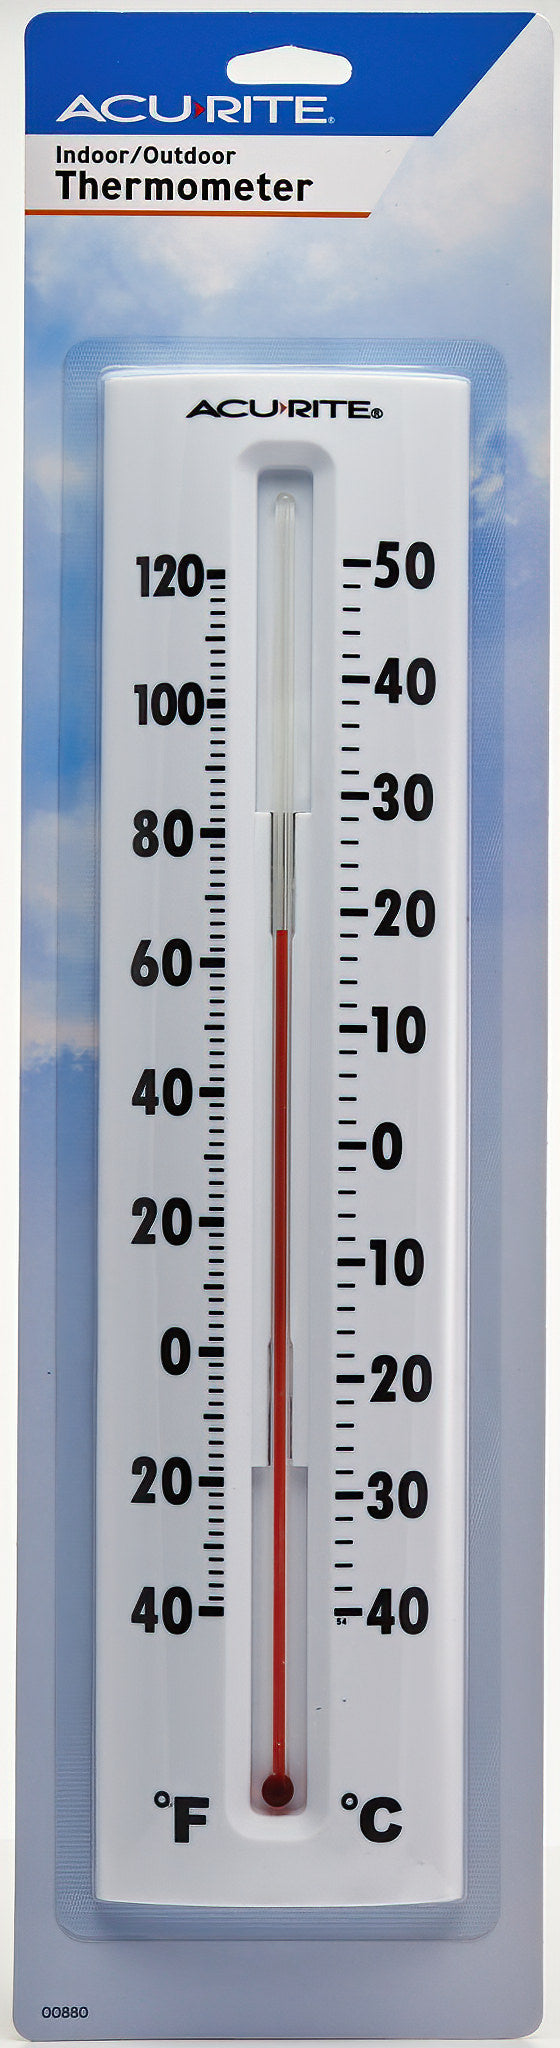 Large Accurite Thermometer